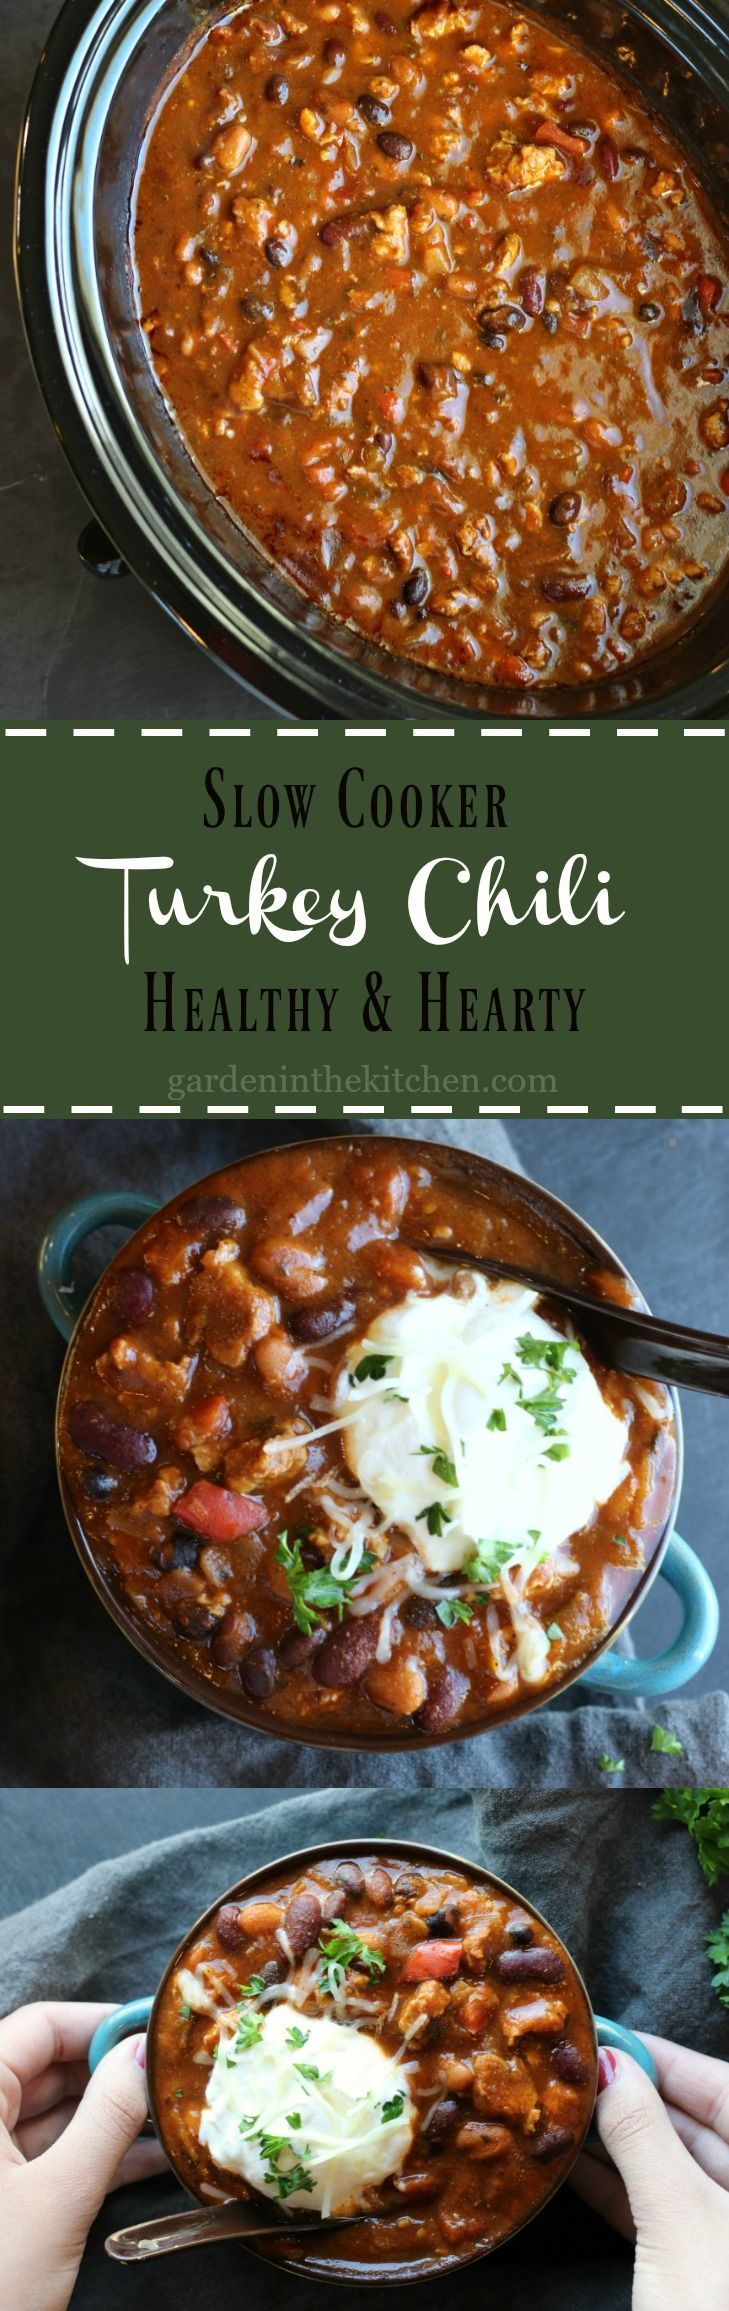 Healthy and Hearty Slow Cooker Turkey Chili | gardeninthekitchen.com